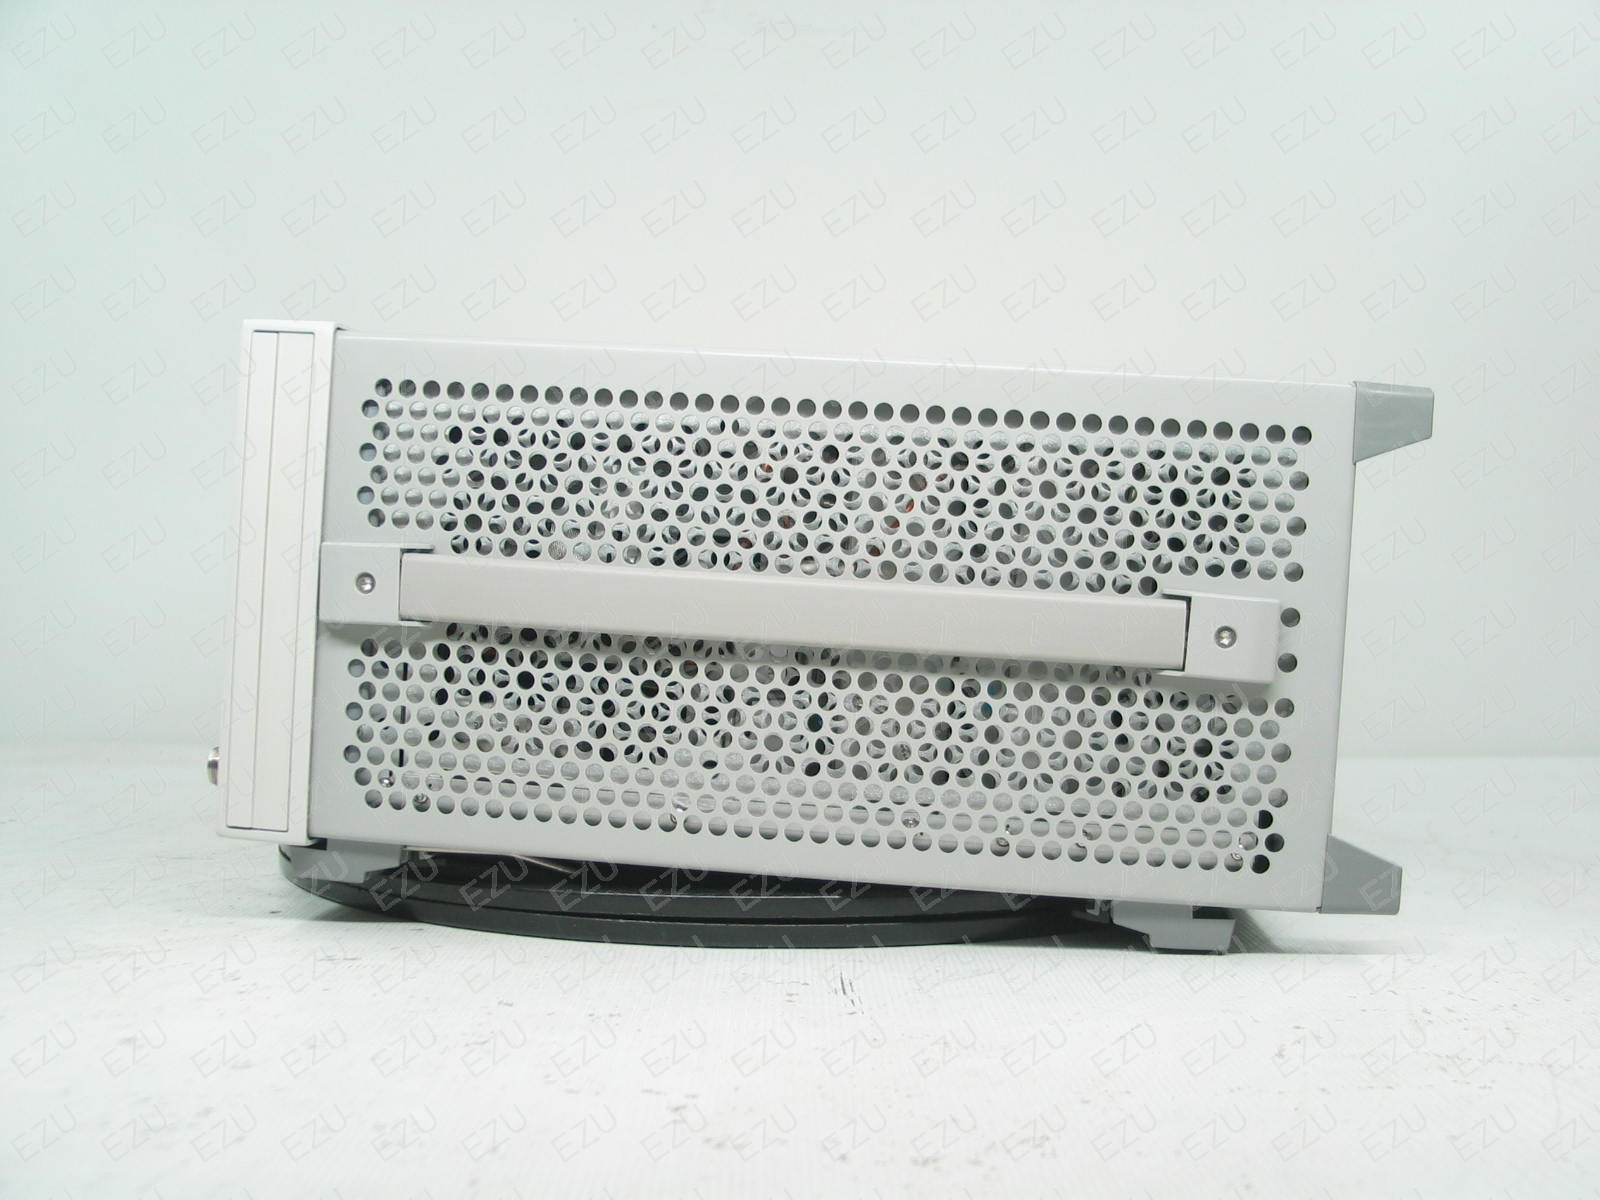 Agilent N9020A Left Photo